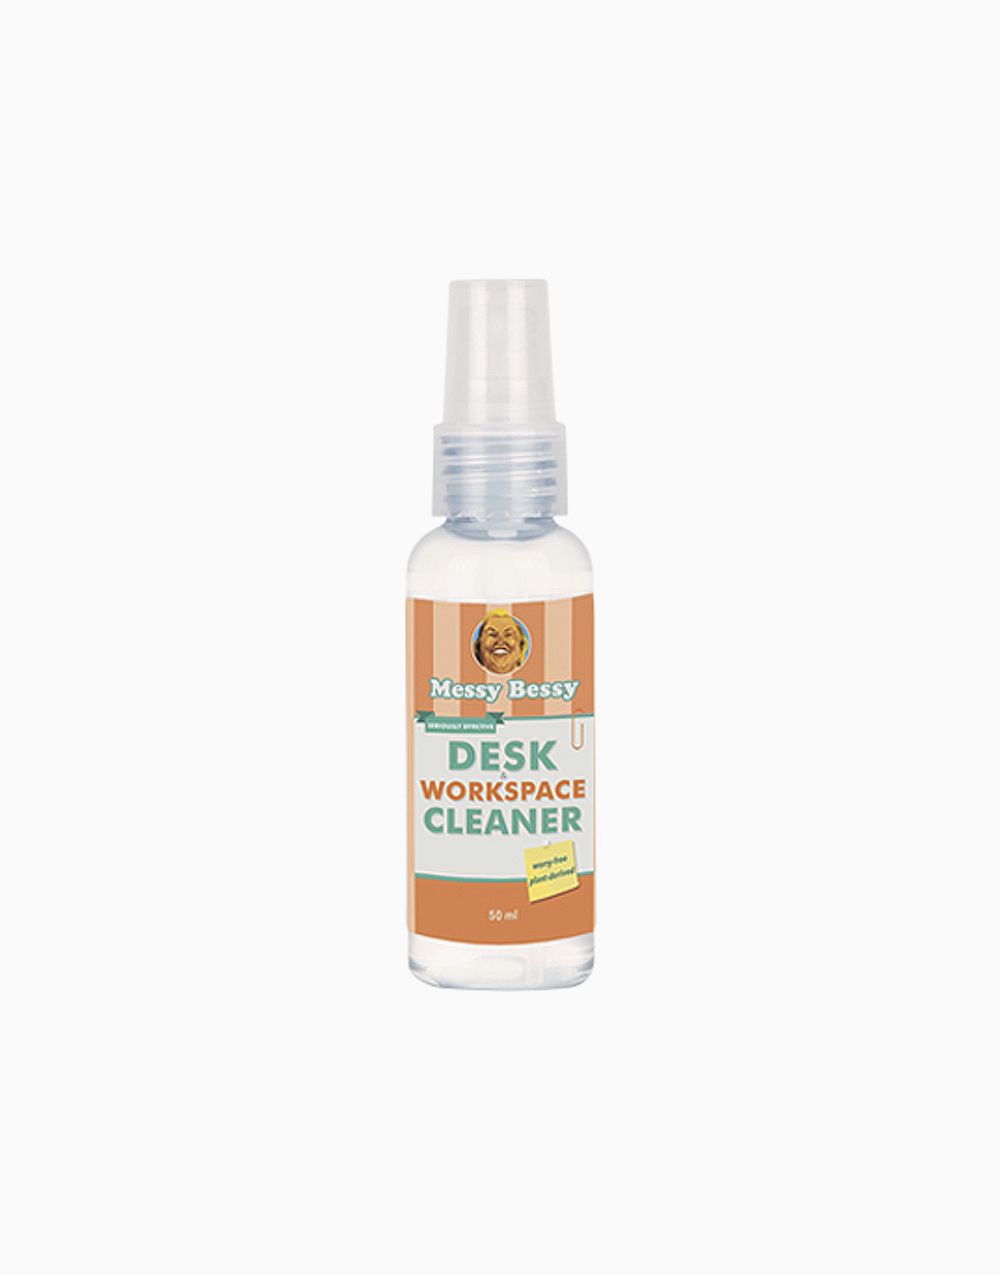 Desk & Workspace Cleaner (50ml) by Messy Bessy